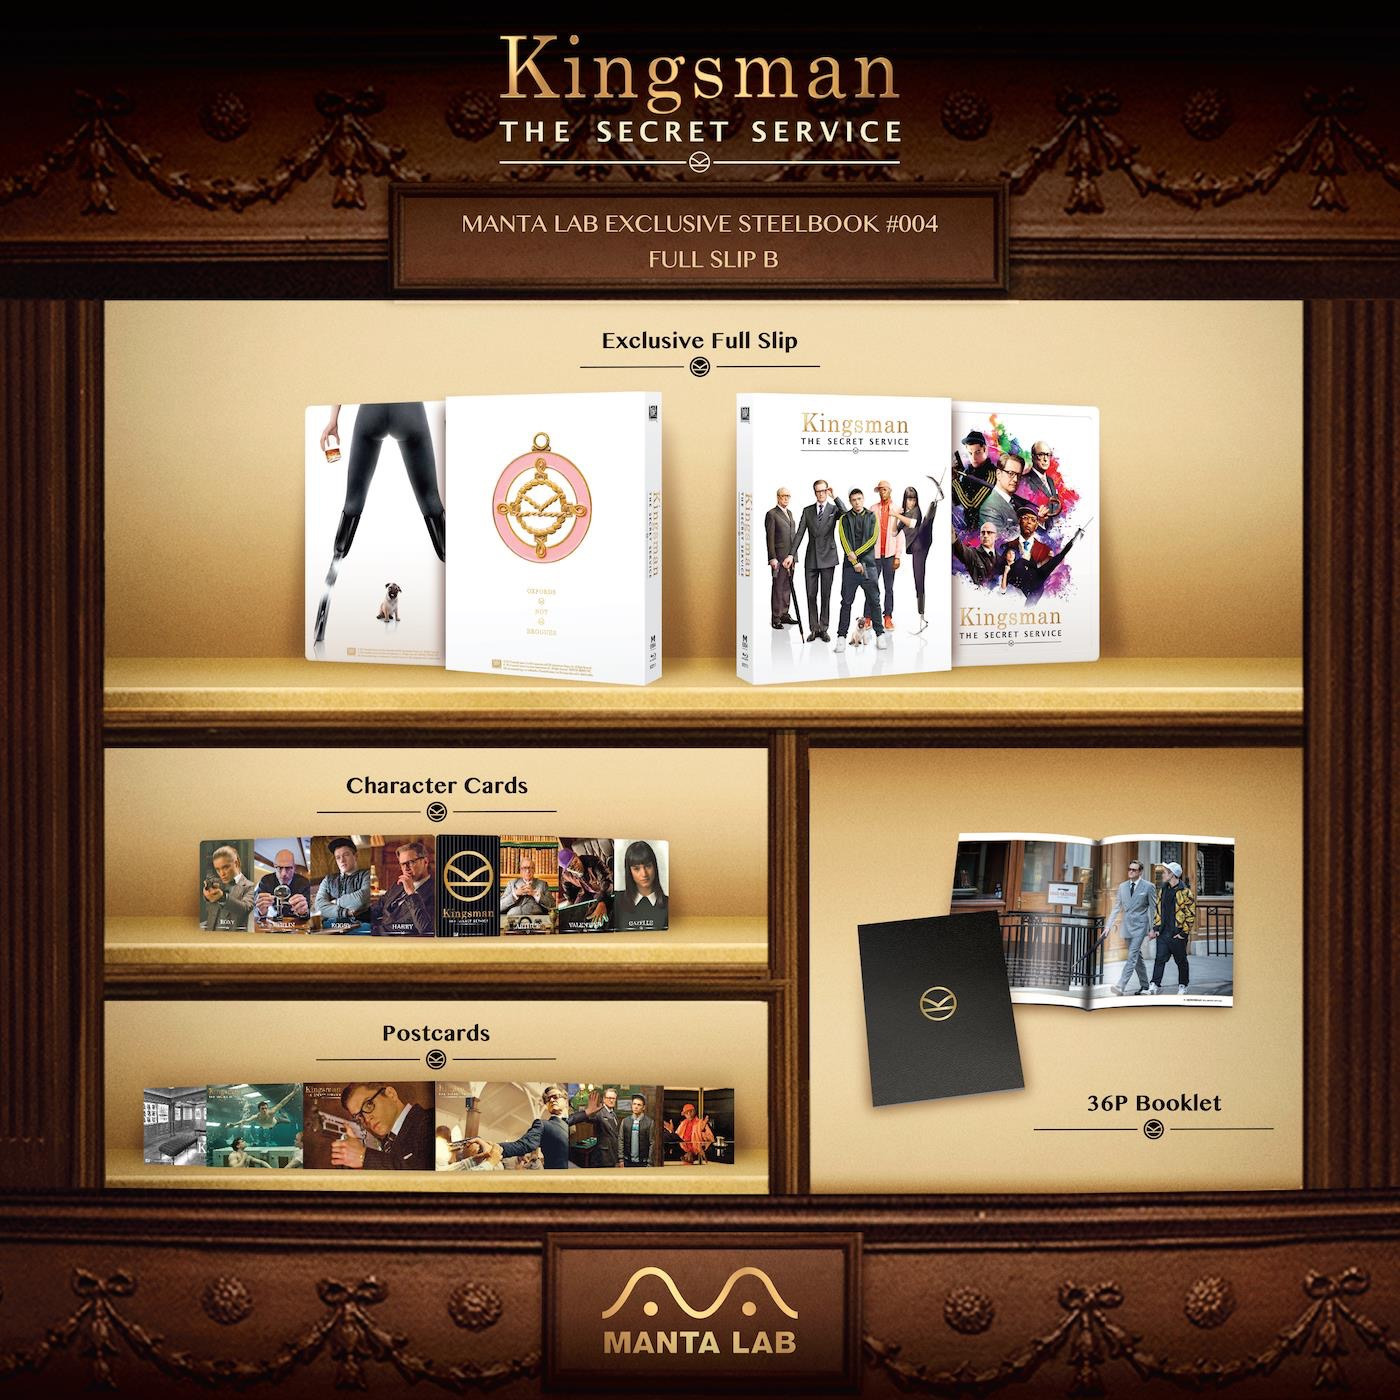 Kingsman mantalab steelbook 2